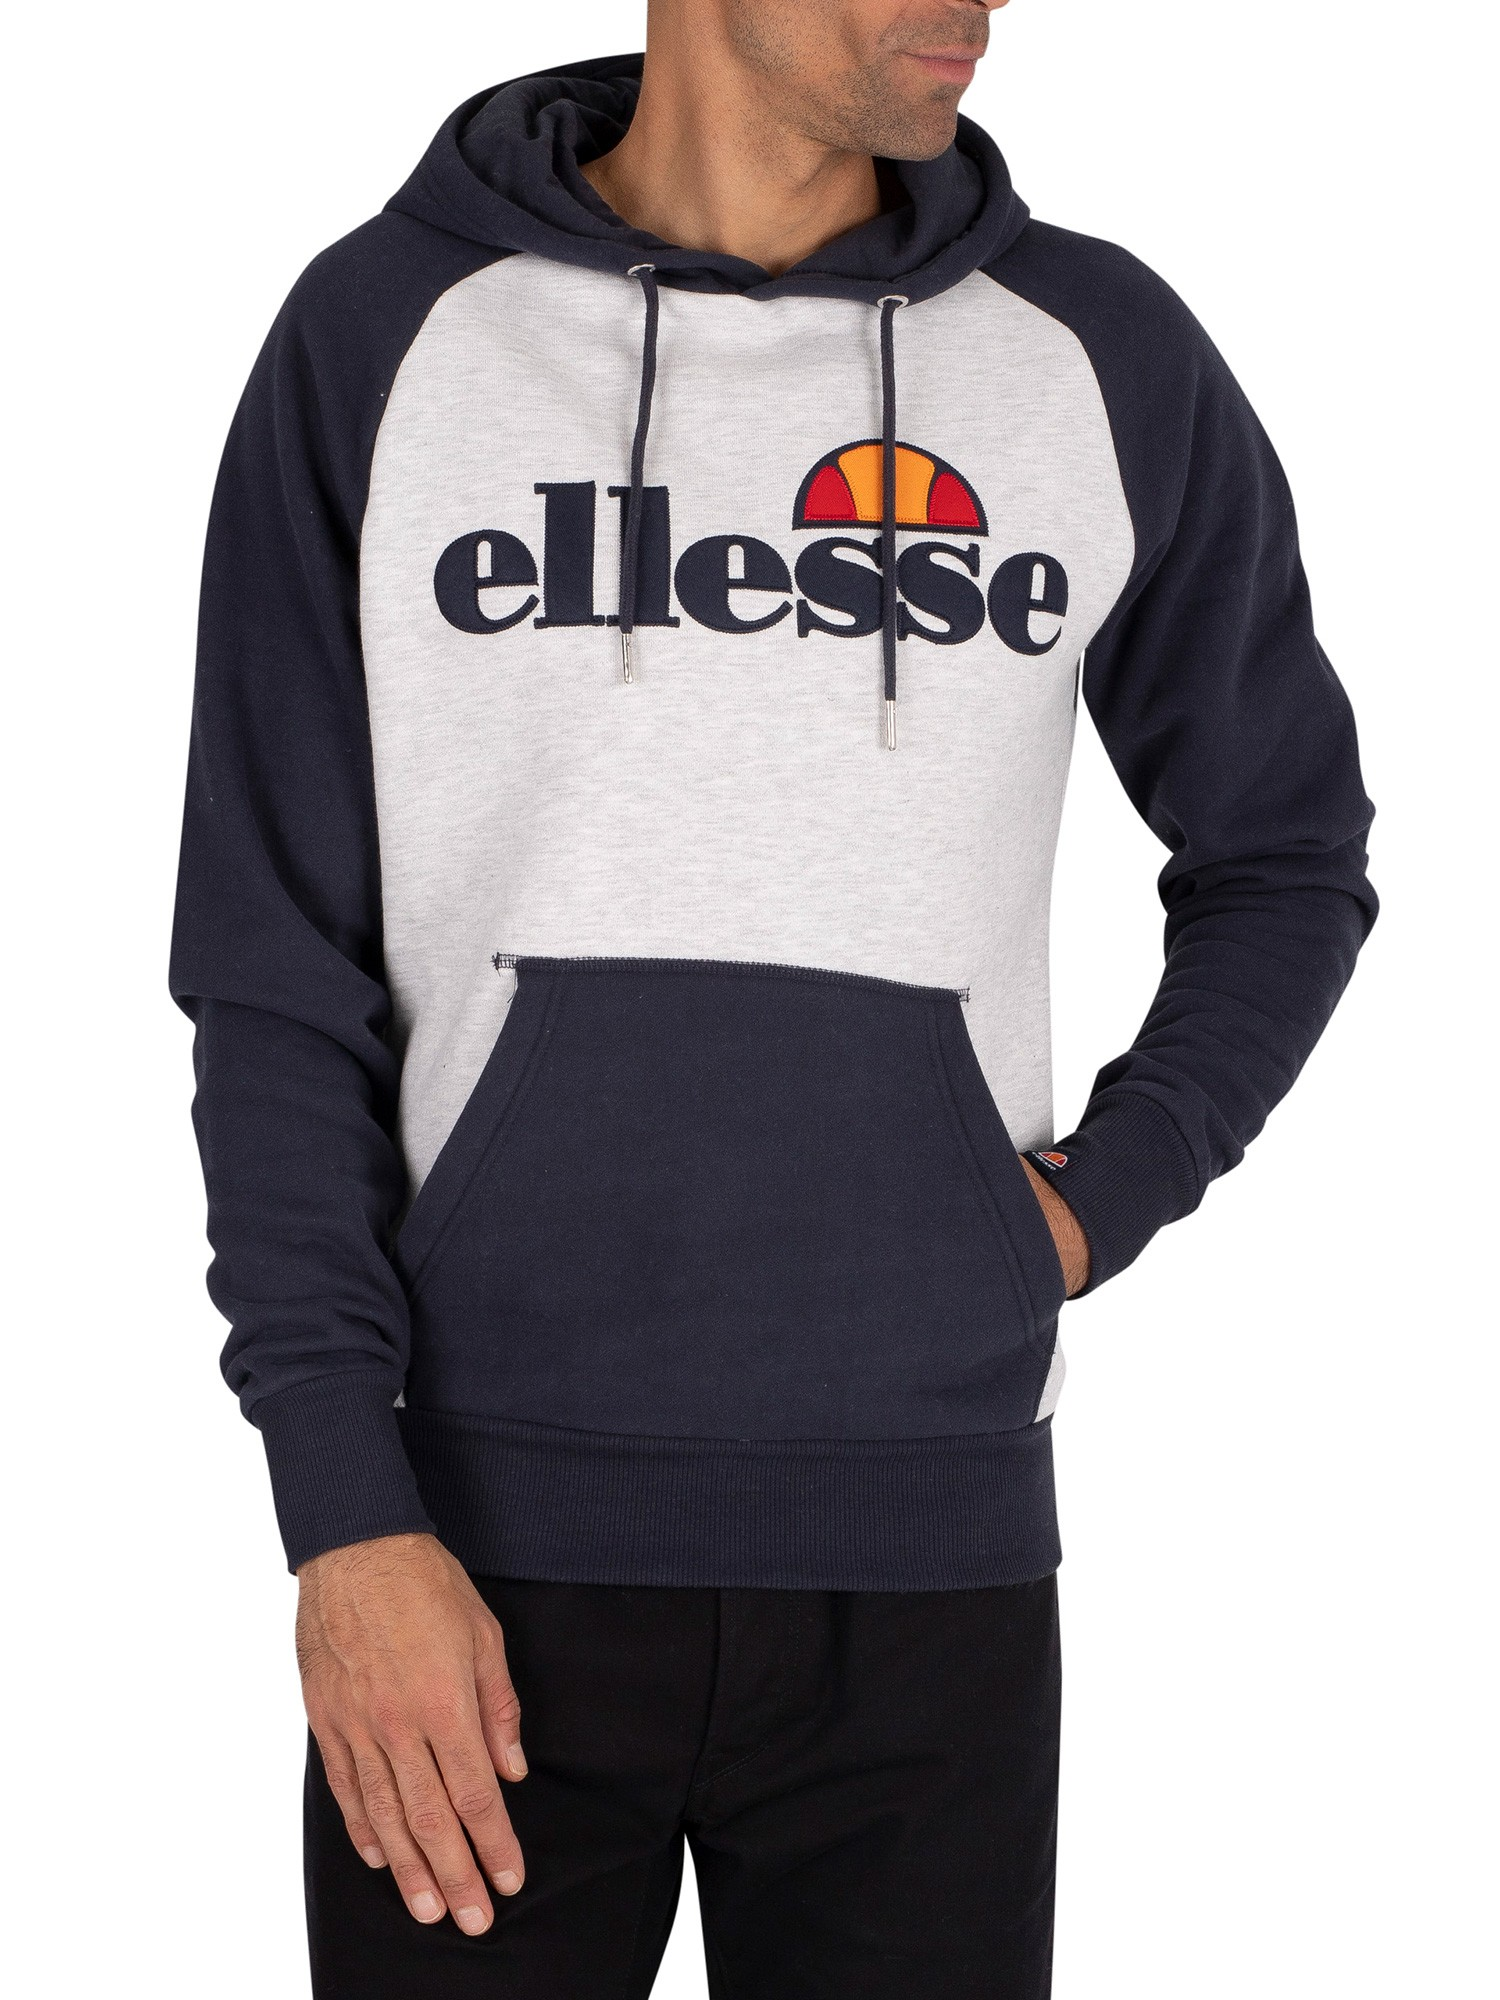 Ellesse Taliamento Pullover Hoodie - White Marl